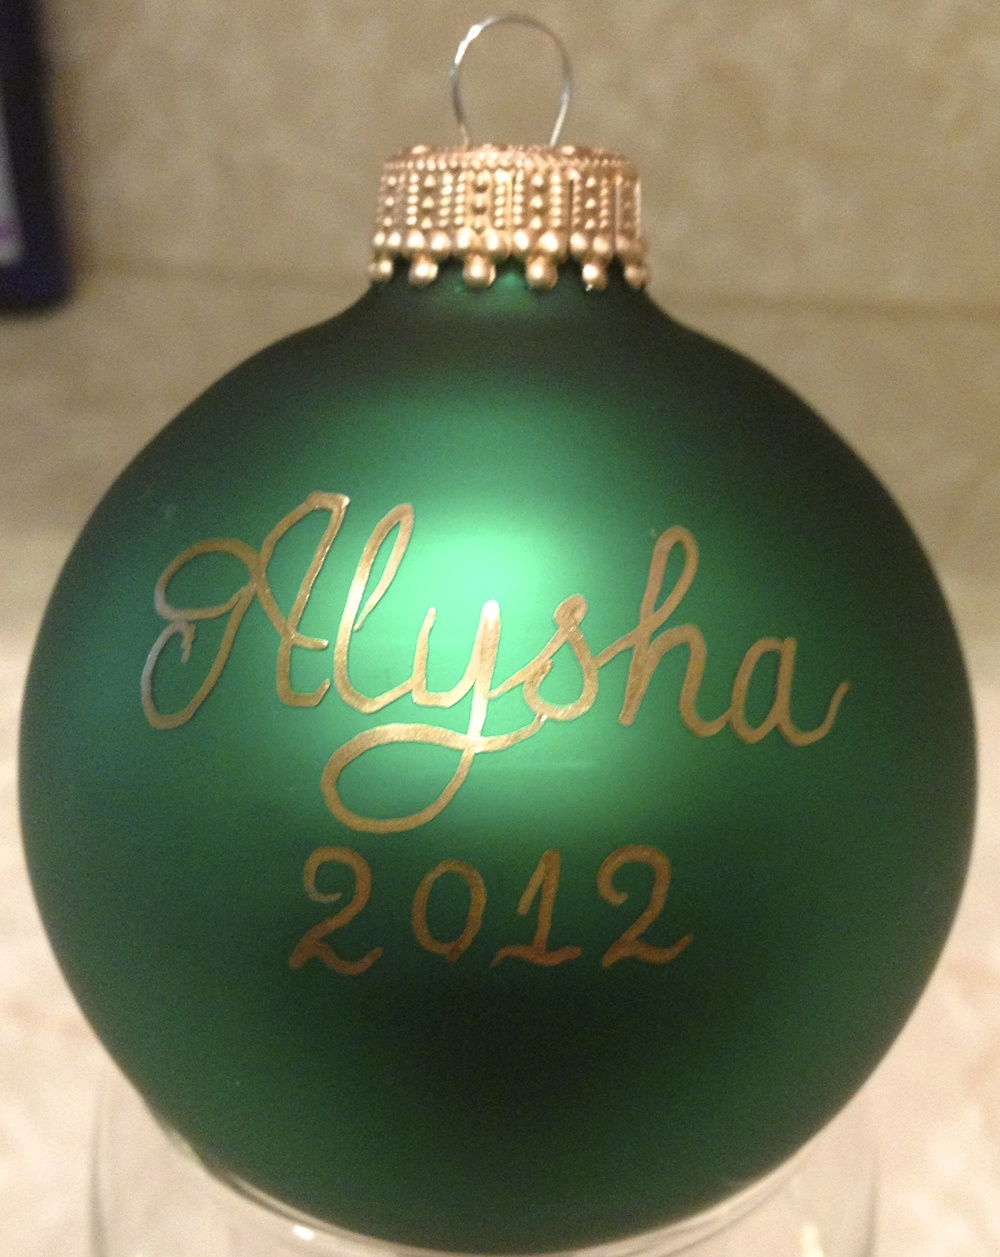 Accident Care and Treatment Centers Personalized Christmas Ornaments.jpg